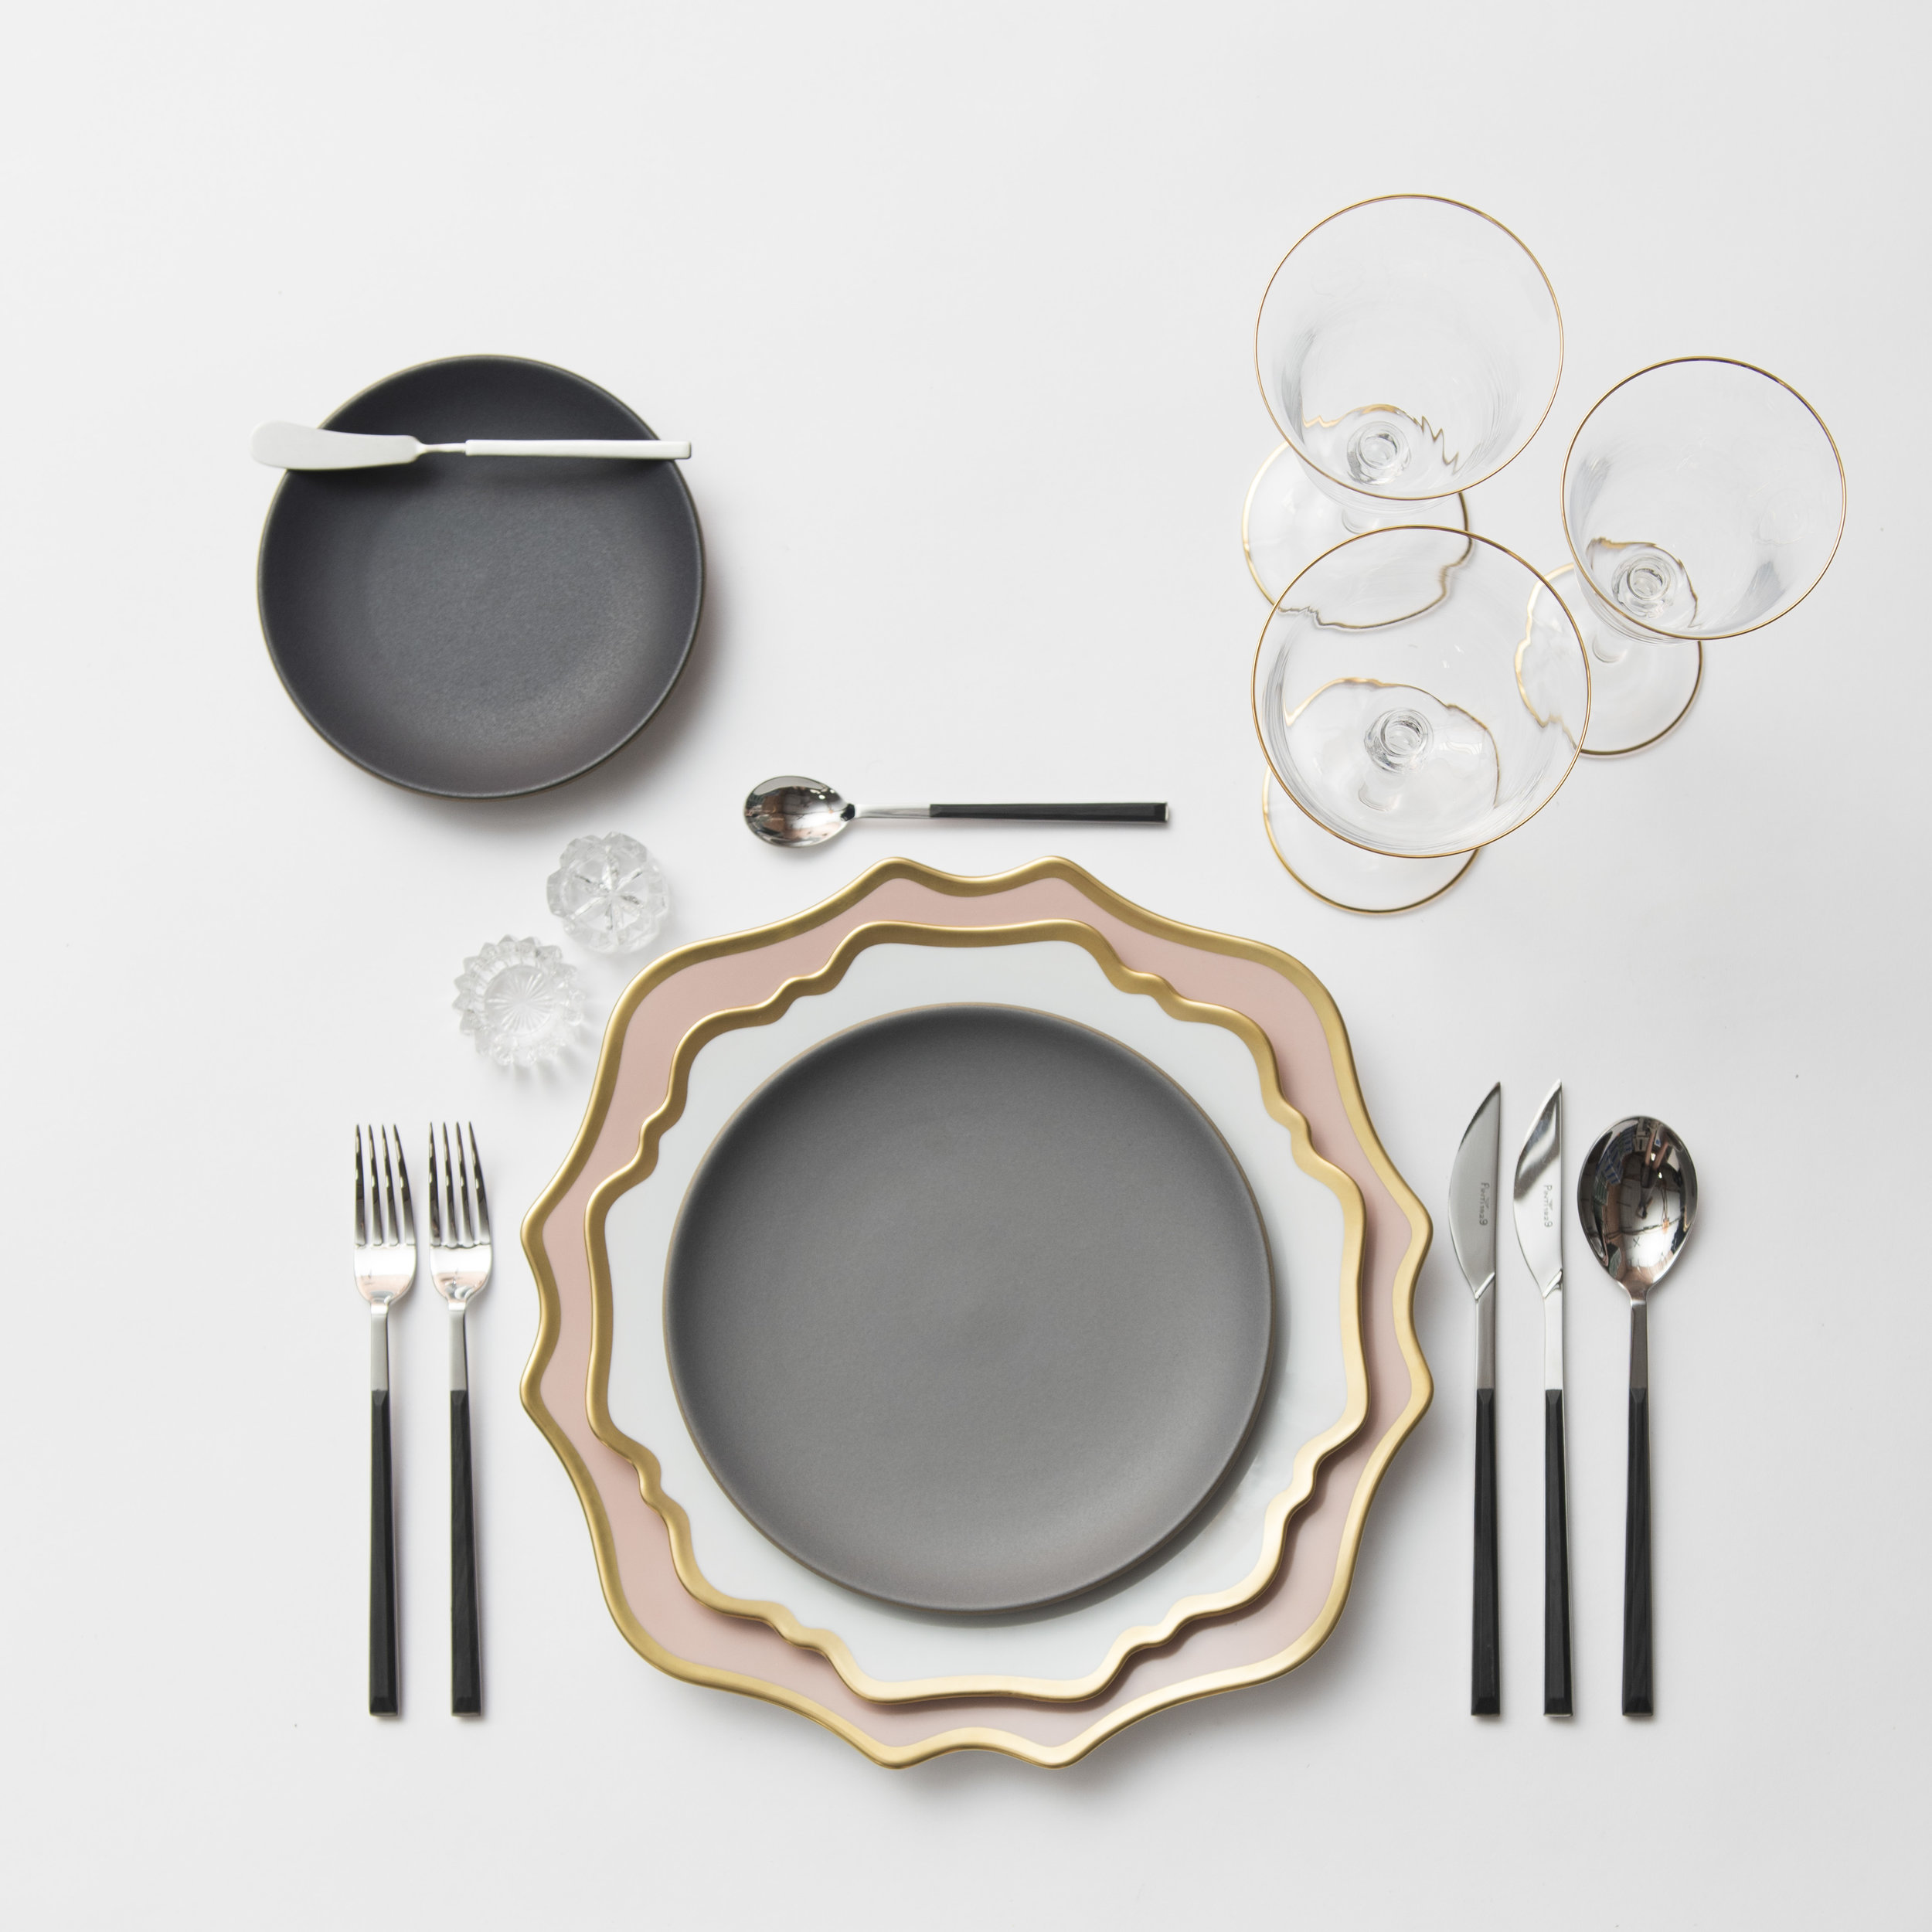 RENT: Anna Weatherley Chargers in Desert Rose/Gold + Anna Weatherley Dinnerware in White/Gold + Danish Flatware in Ebony + Chloe 24k Gold Rimmed Stemware + Antique Crystal Salt Cellars  SHOP: Anna Weatherley Dinnerware in White/Gold + Chloe 24k Gold Rimmed Stemware